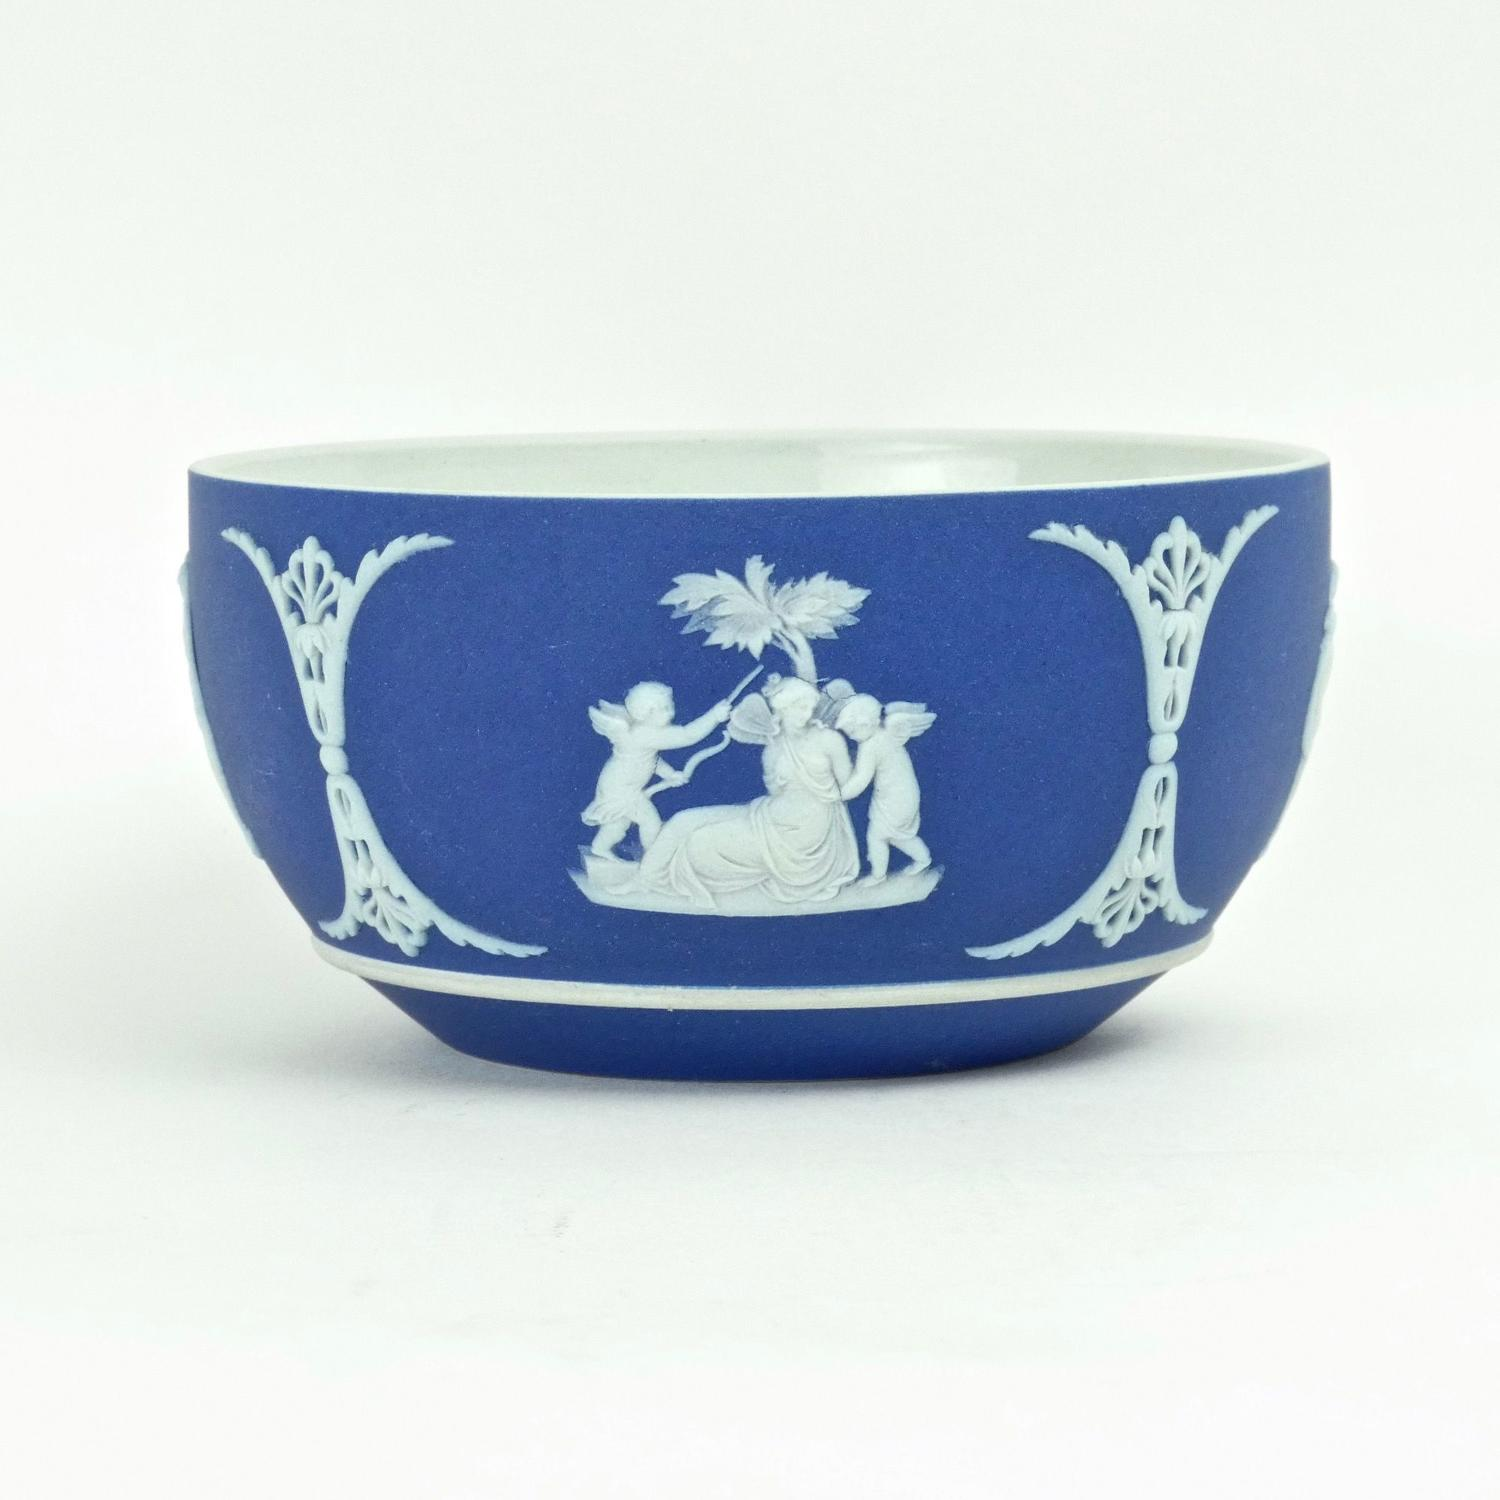 Wedgwood jasper sugar bowl